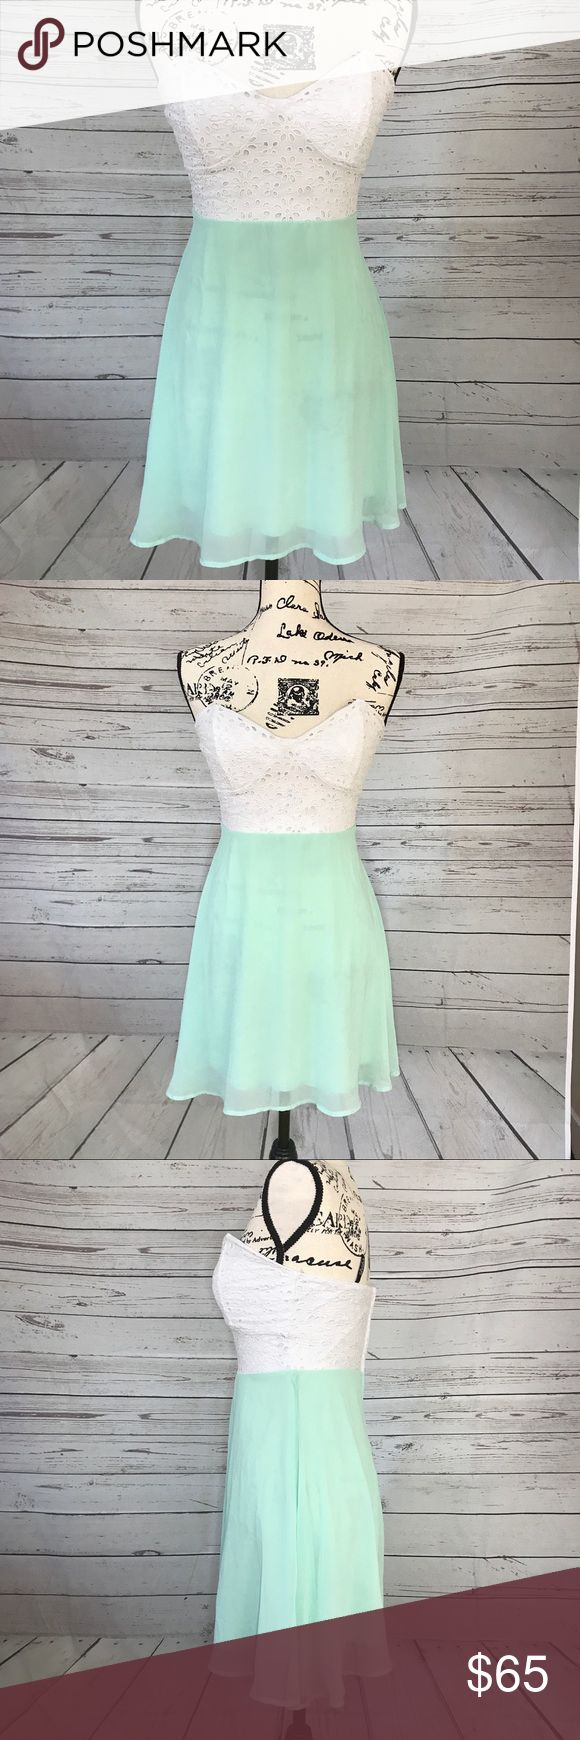 Lulus Strapless Mint Green Lace Top Party Dress Adorable Strapless party dress by lulus. A white Floral cut Lace Top is followed by a mint green skirt. Top is boned and fitted skirt is loose and flowy. Zips up the back. Worn once.  RUNS SMALL!!  Measurements coming soon! Lulu's Dresses Strapless